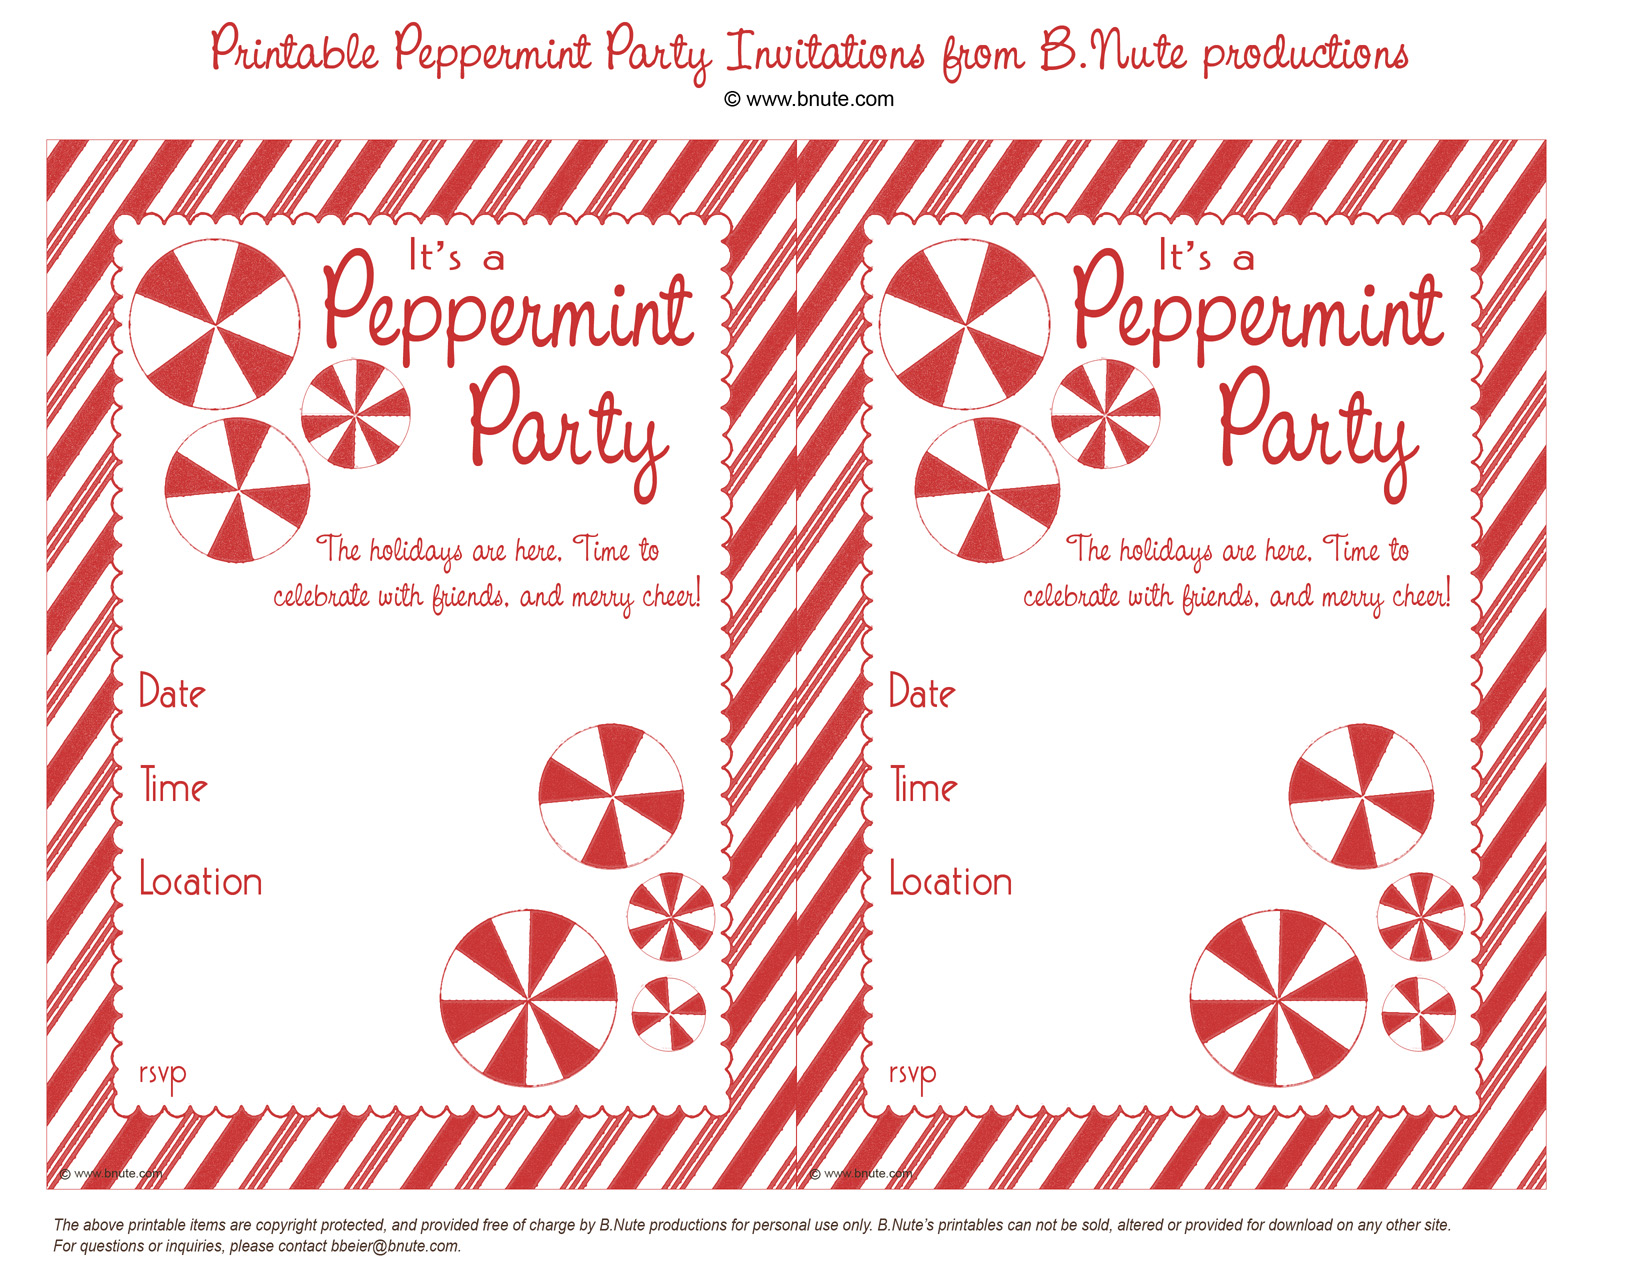 Holiday Party Free Printable Peppermint Party Invitations and Ideas – Party Invites Templates Free to Print